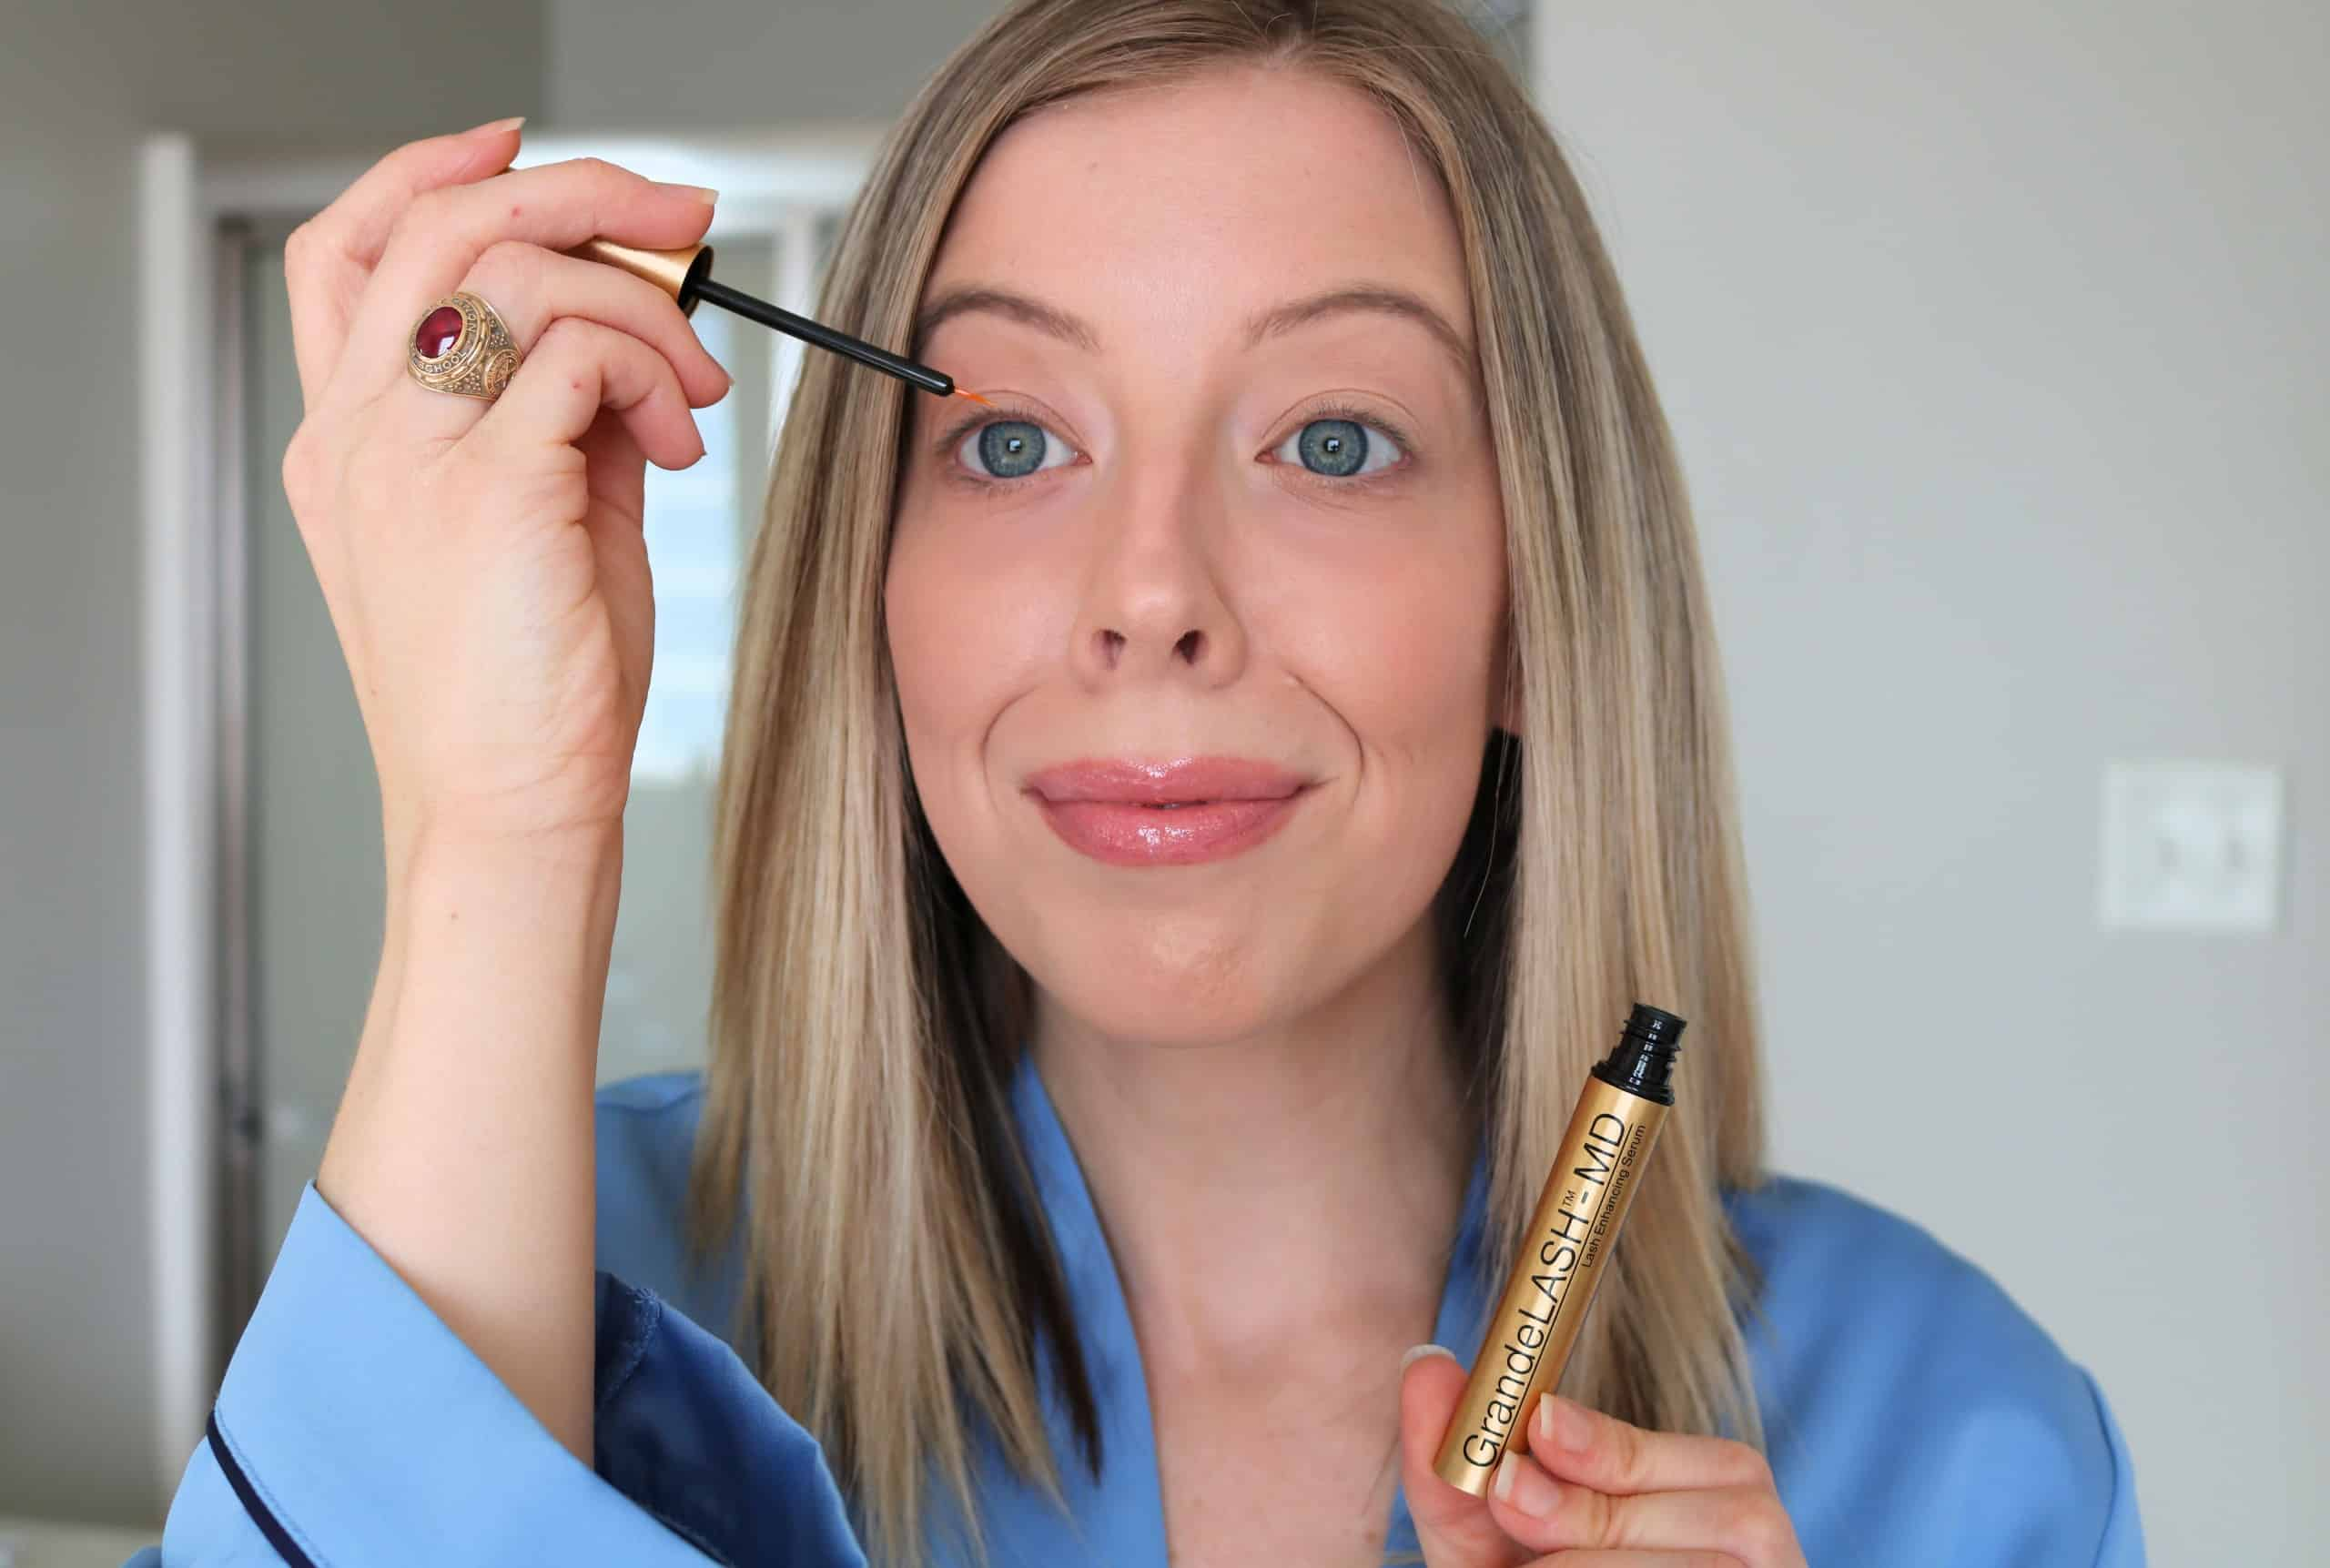 Looking for the best lash serum and tips on how to achieve longer-looking lashes? Check out my full guide using the GrandeLASH-MD Lash Enhancing Serum, with helpful dos + don'ts, and tips on how to apply lash serum the correct way! #GrandeCosmetics #GrandePARTNER #lashserum #beautytips